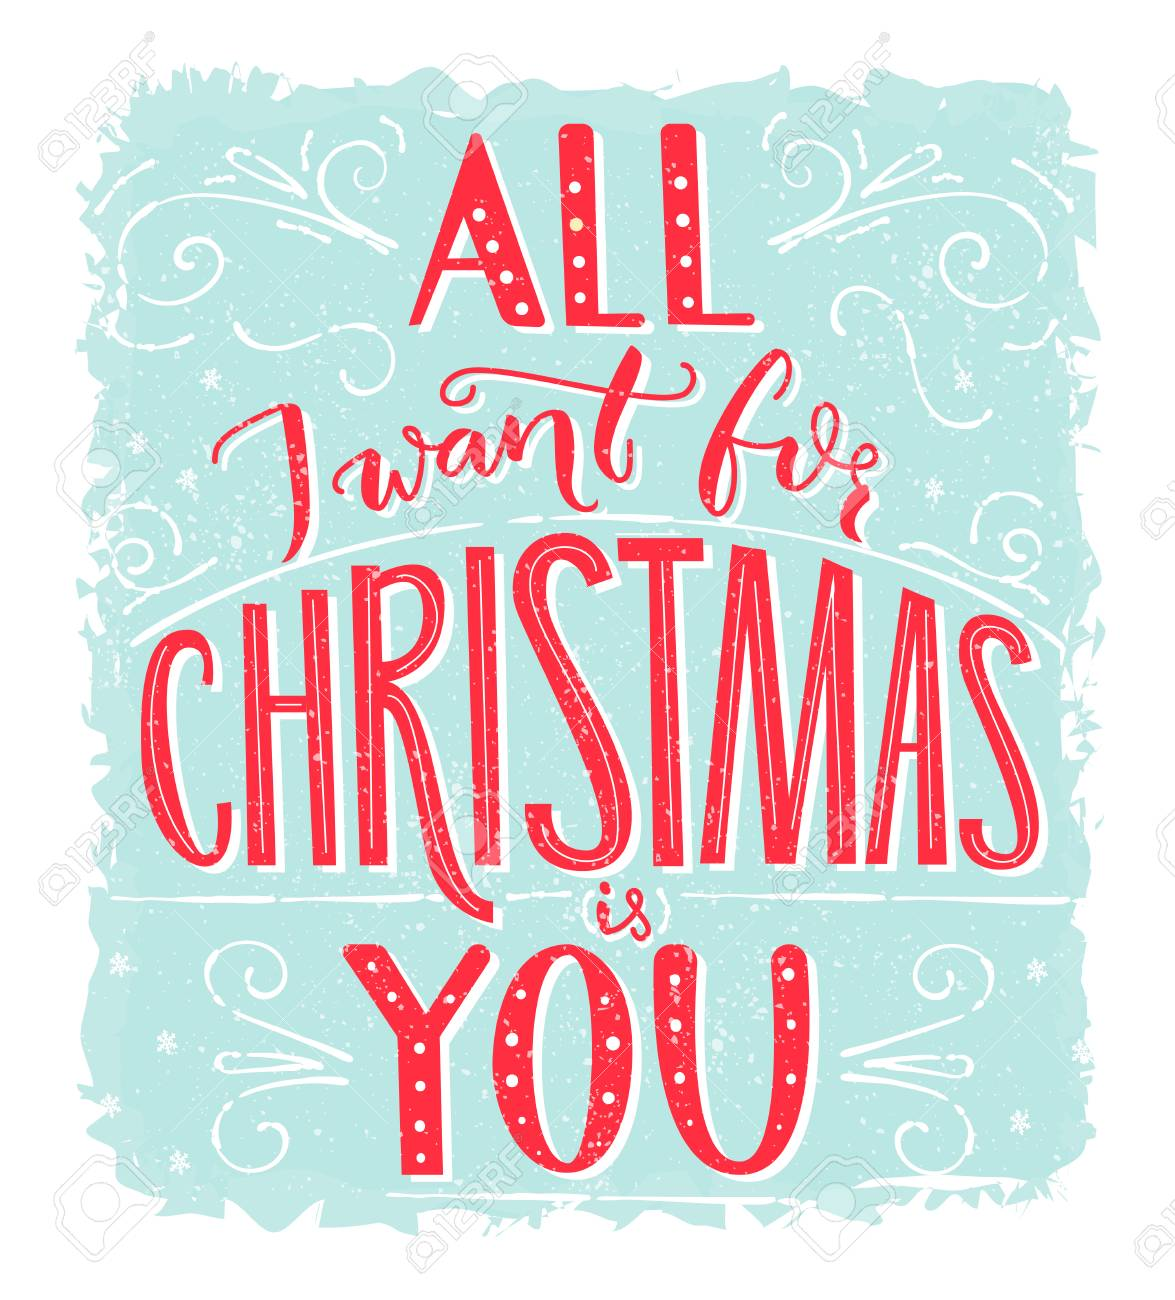 All I Want For Christmas.All I Want For Christmas Is You Greeting Card With Romantic